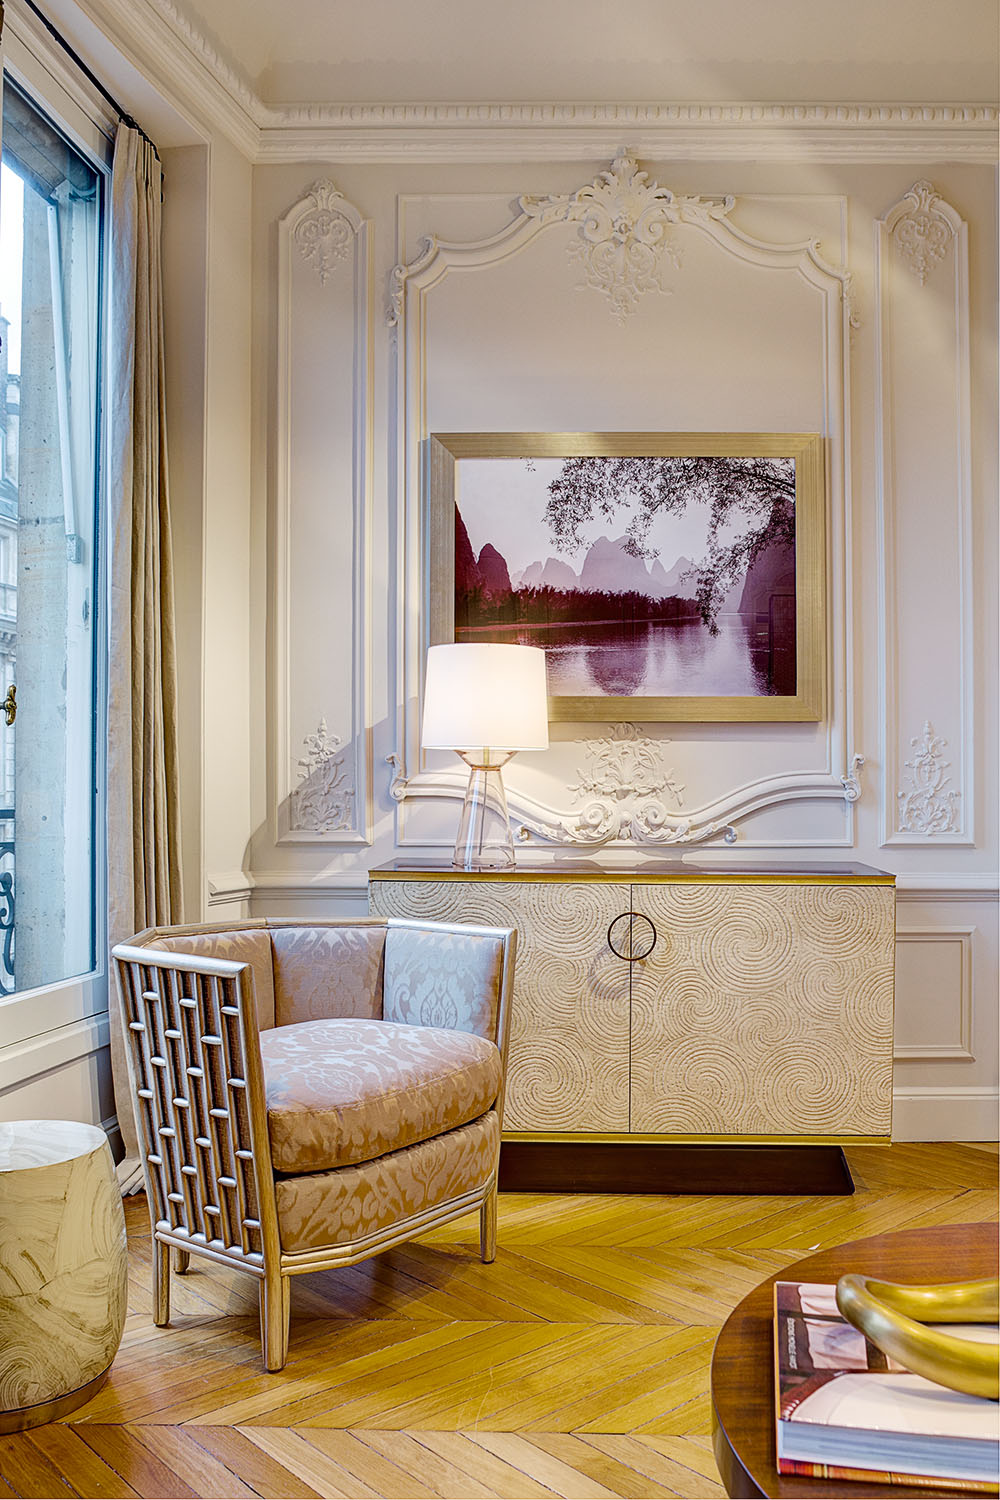 Baker Showroom rue Saint Honore - Paris